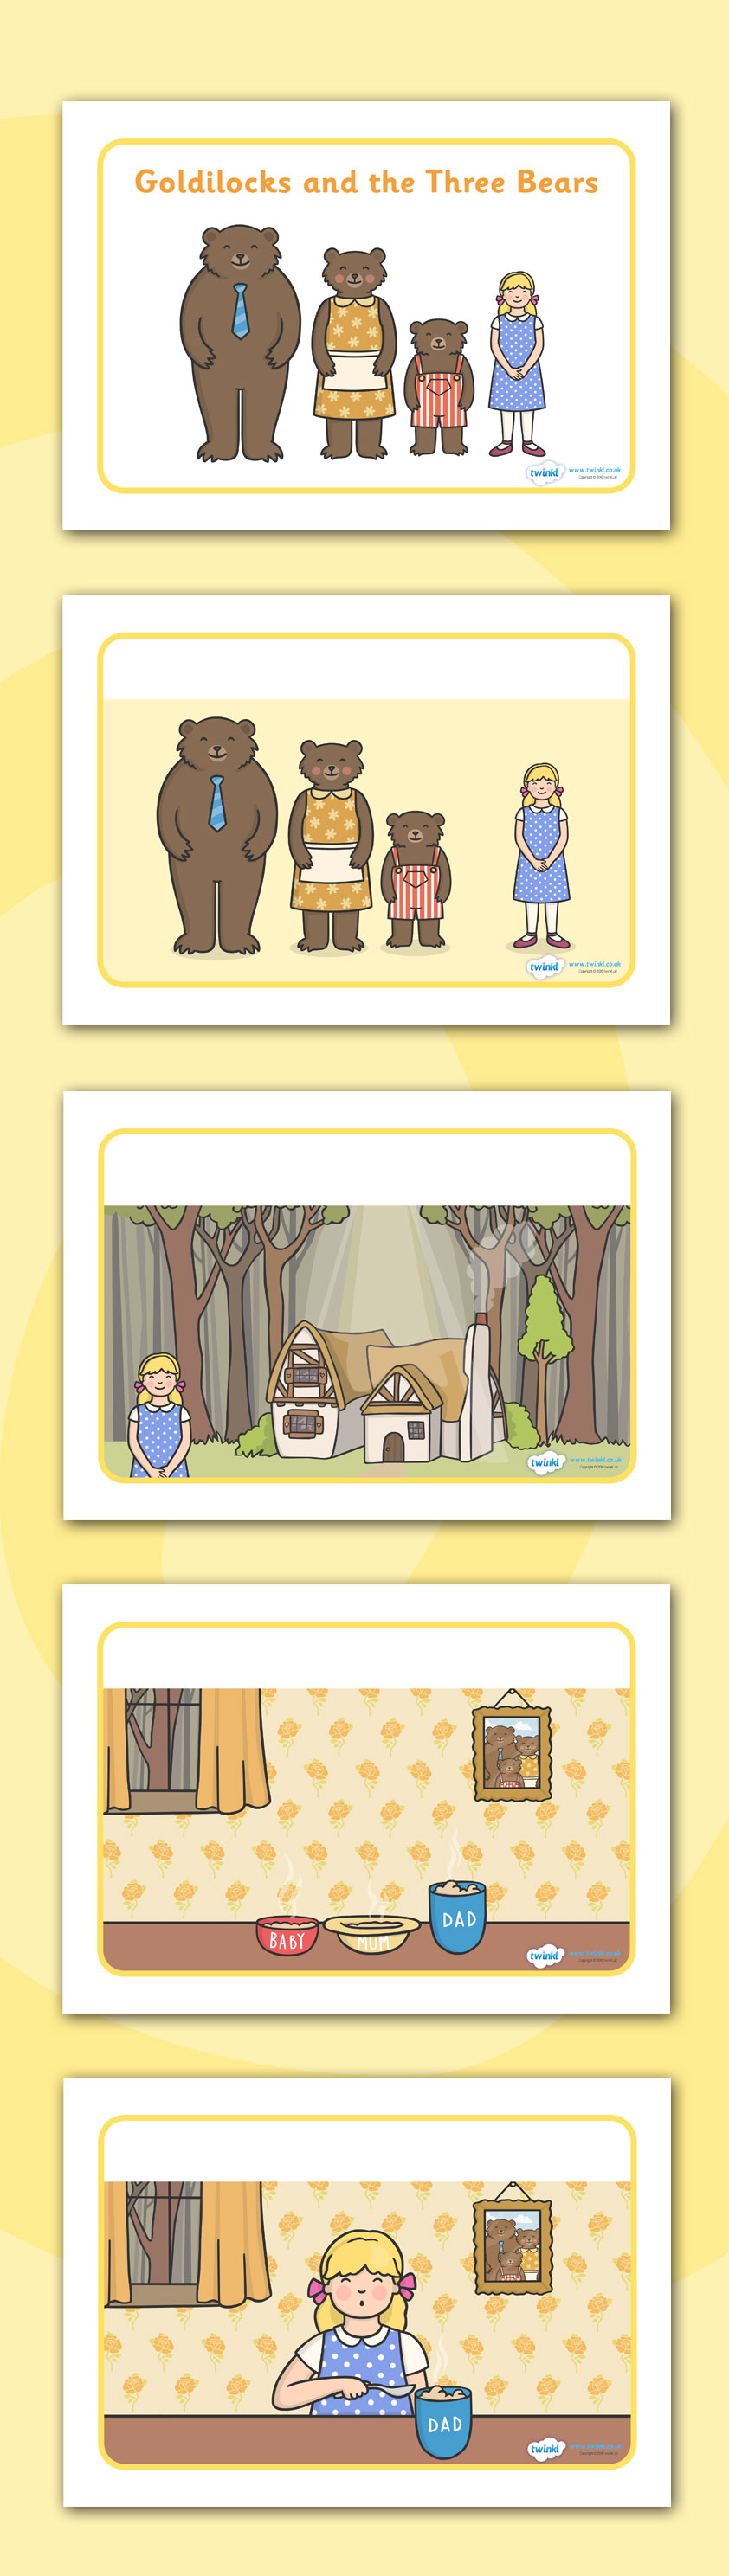 Twinkl Resources >> Goldilocks and the Three Bears Story Sequencing ...